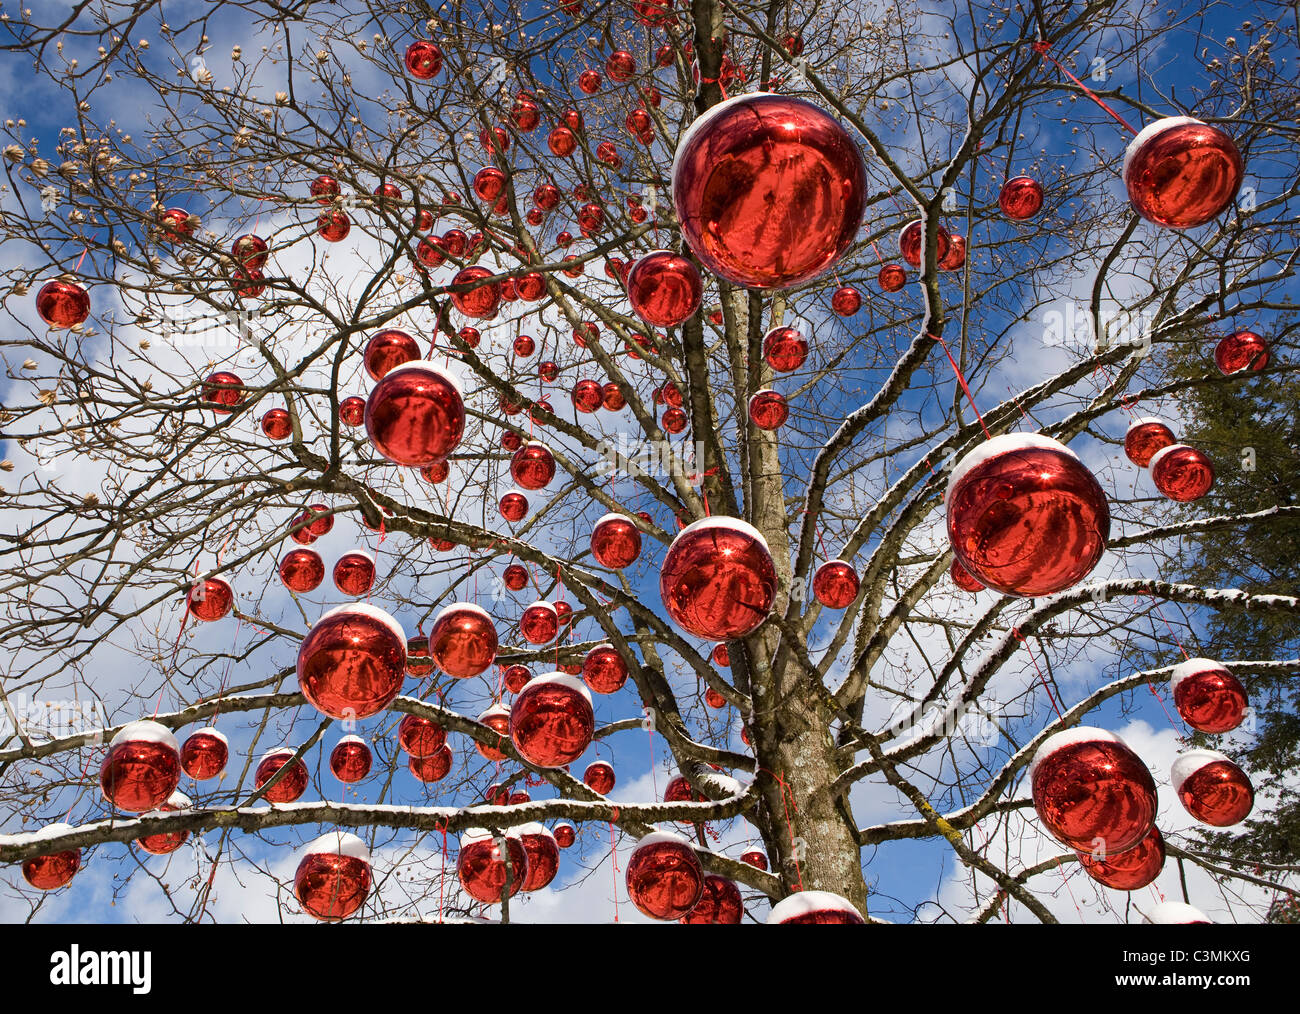 Austria, Salzburg, View of tree decorated with christmas balls - Stock Image